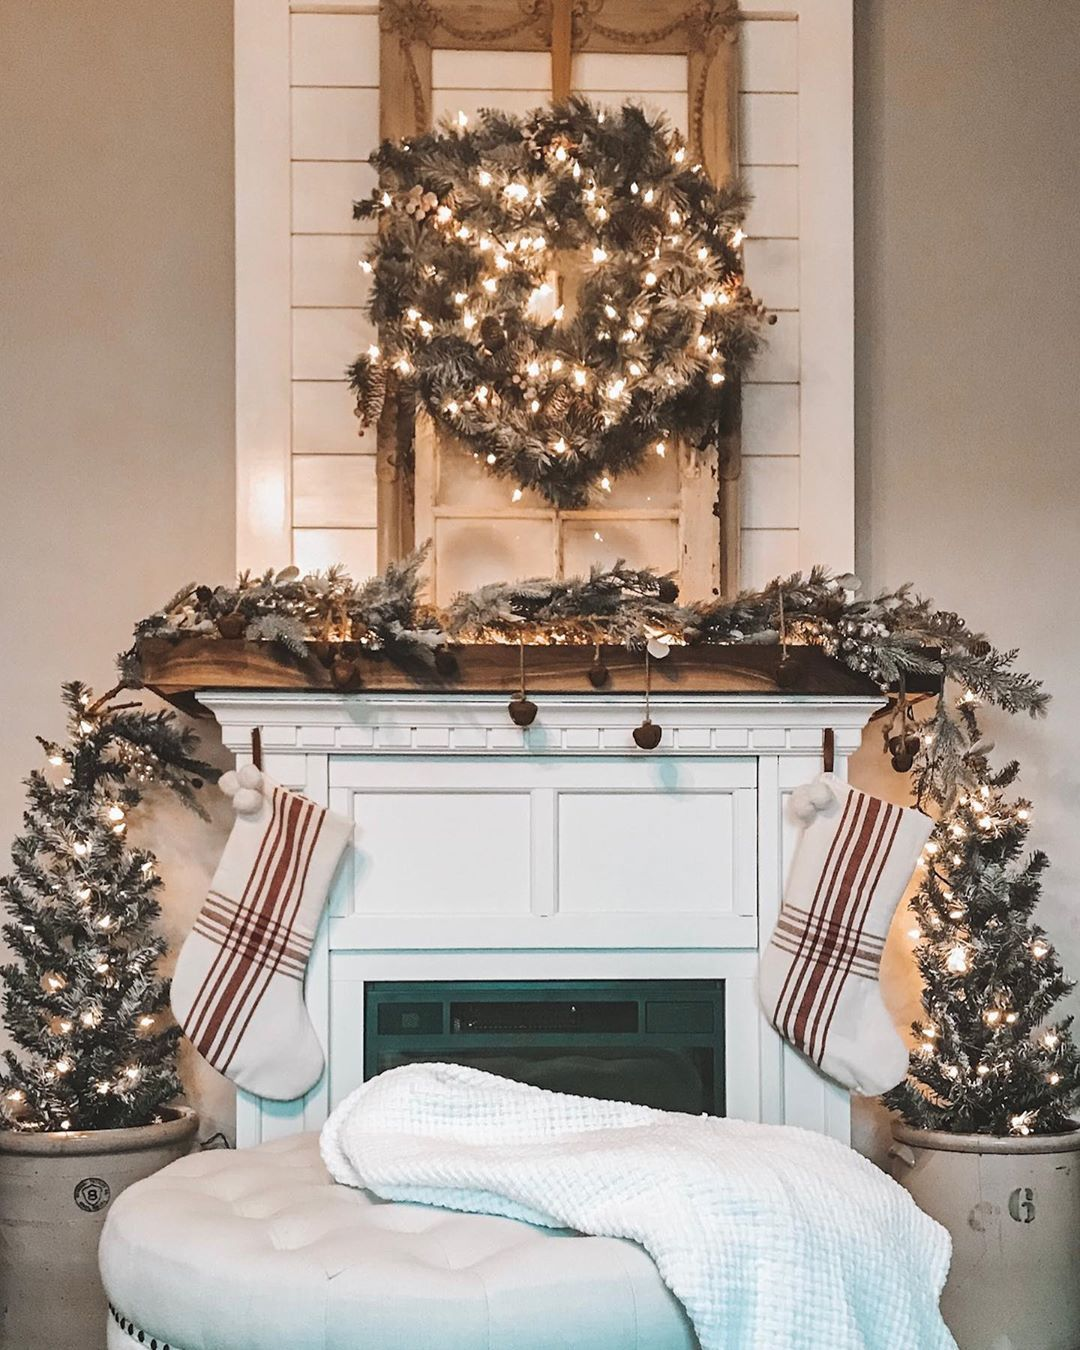 Christmas Eve Hobby Lobby 2020 Tried another look for the mantle! Found this half off wreath at